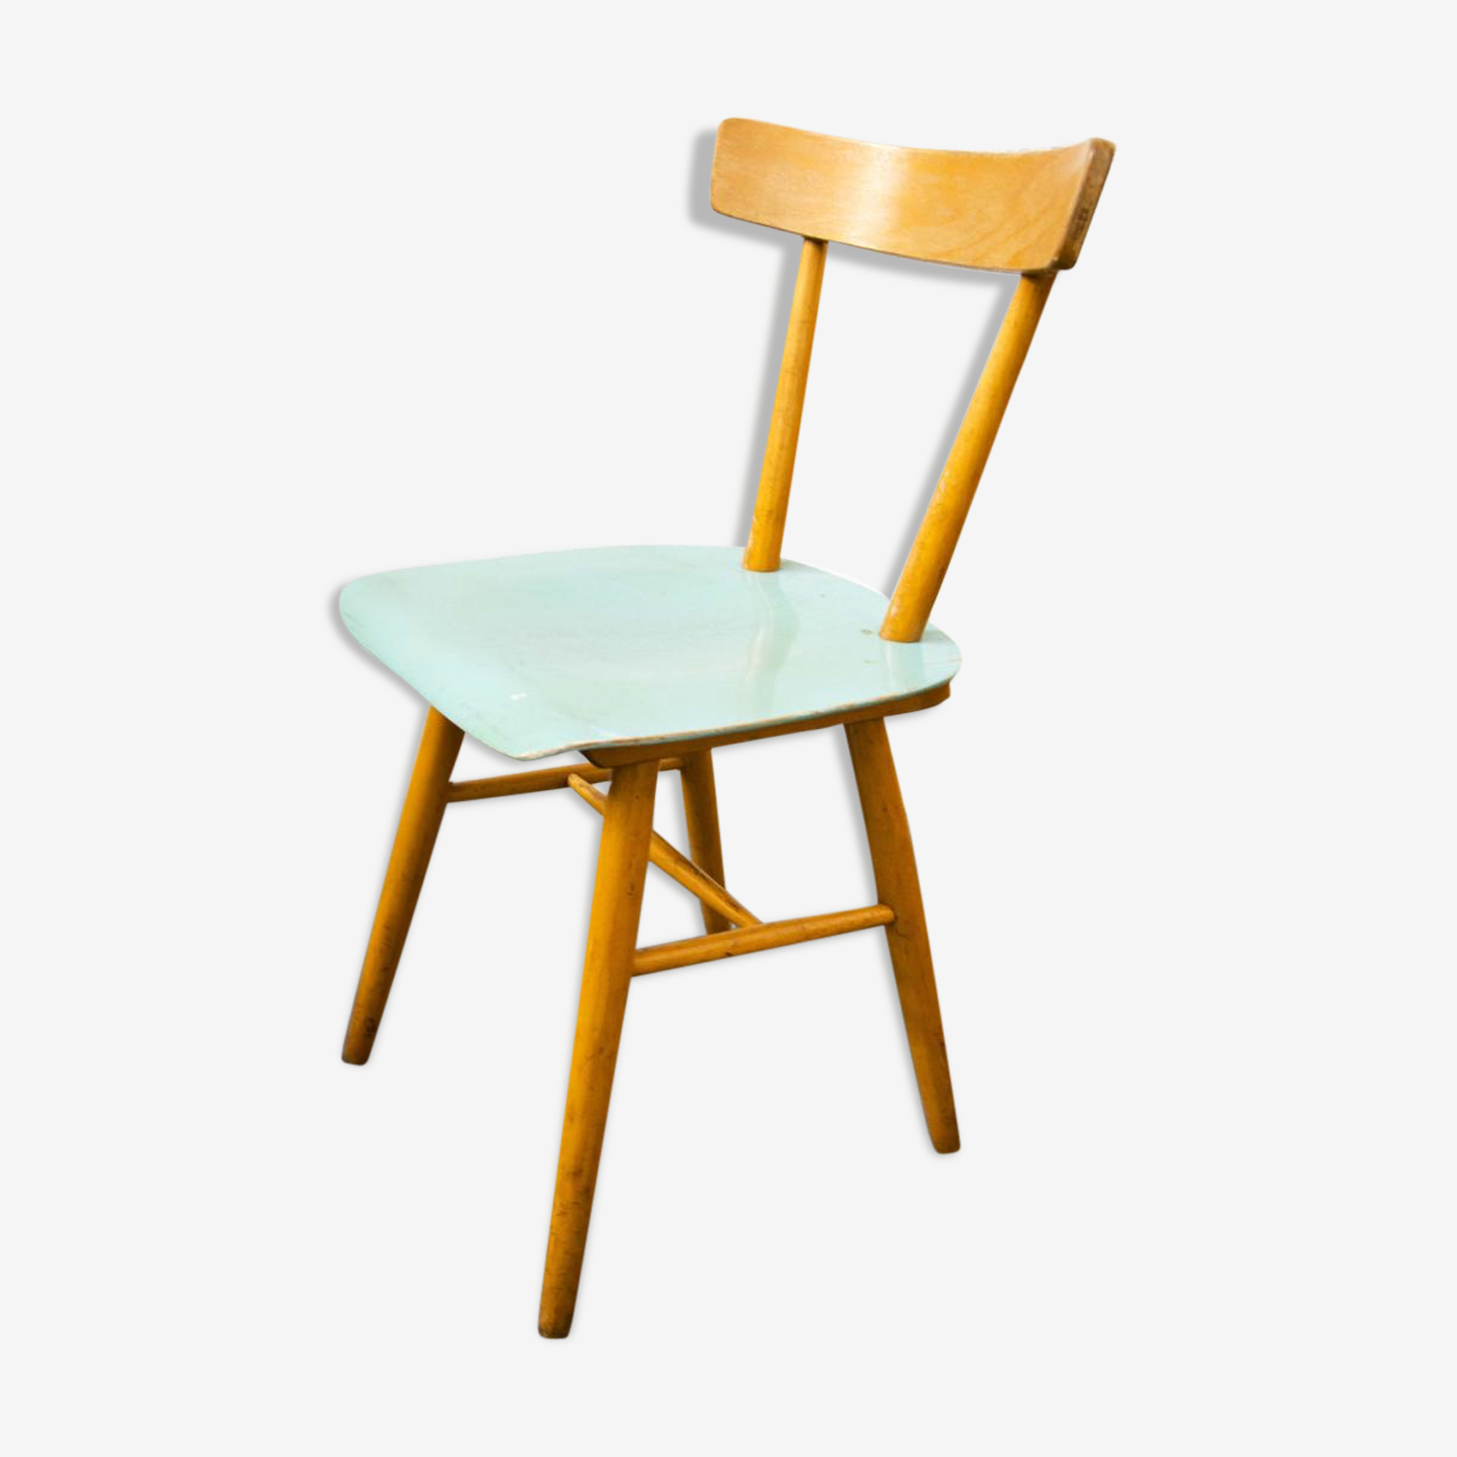 Ton chair in painted wood